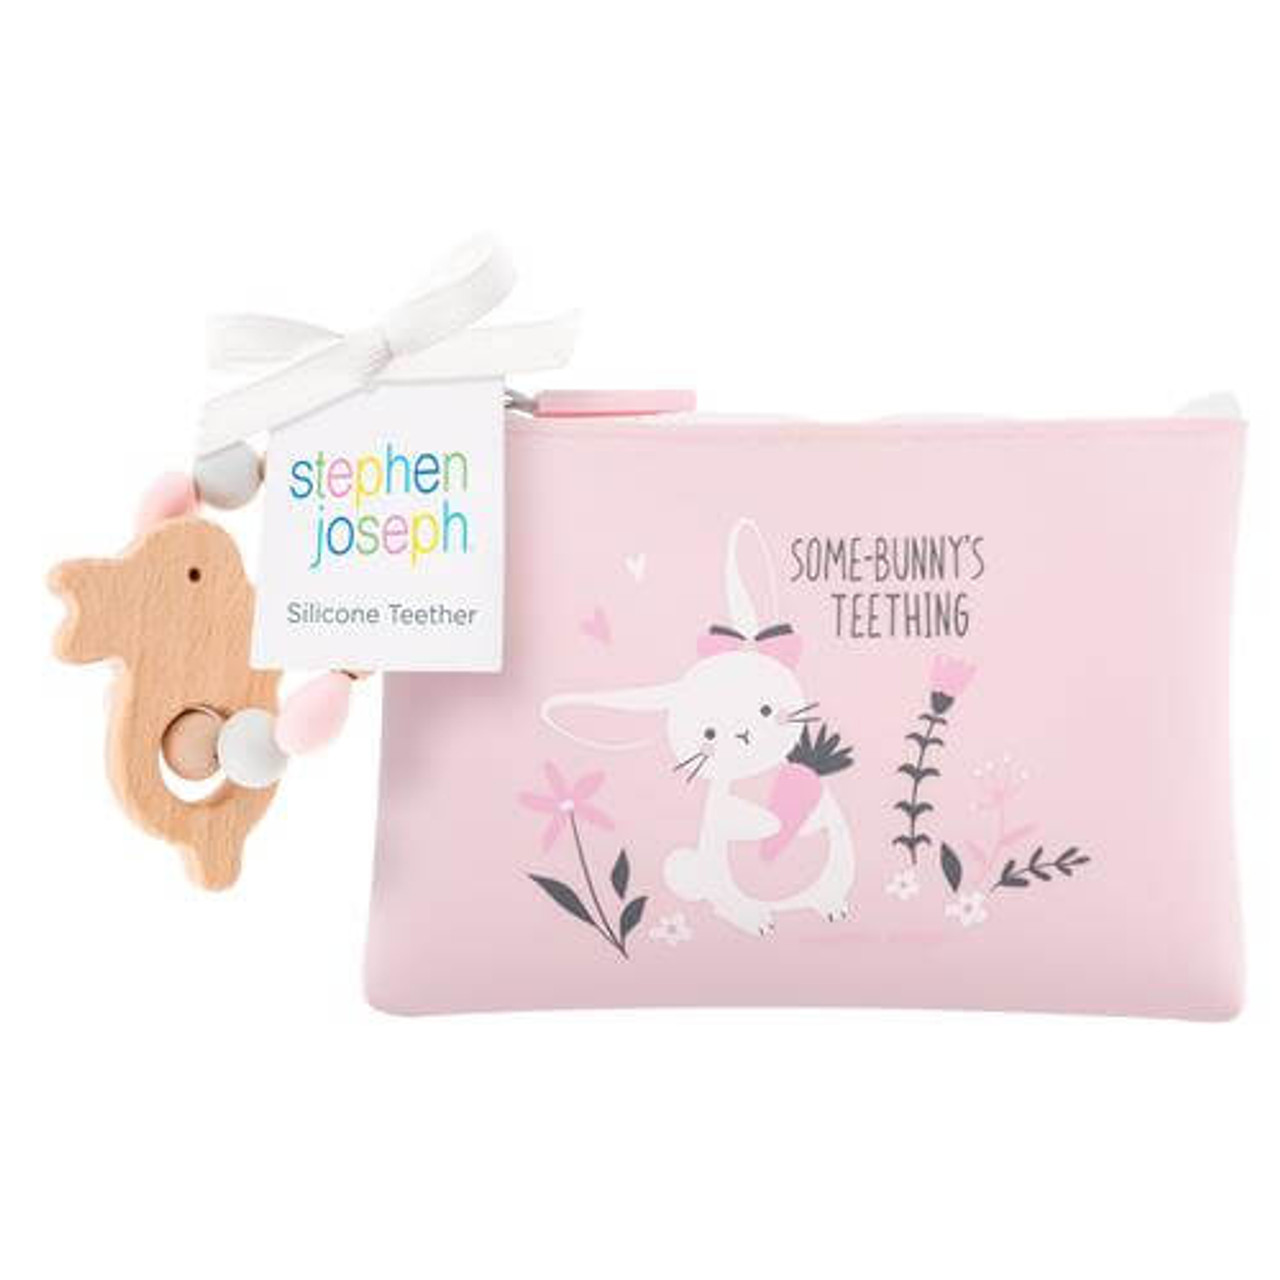 Stephen Joseph silicone wood bunny teether pouch